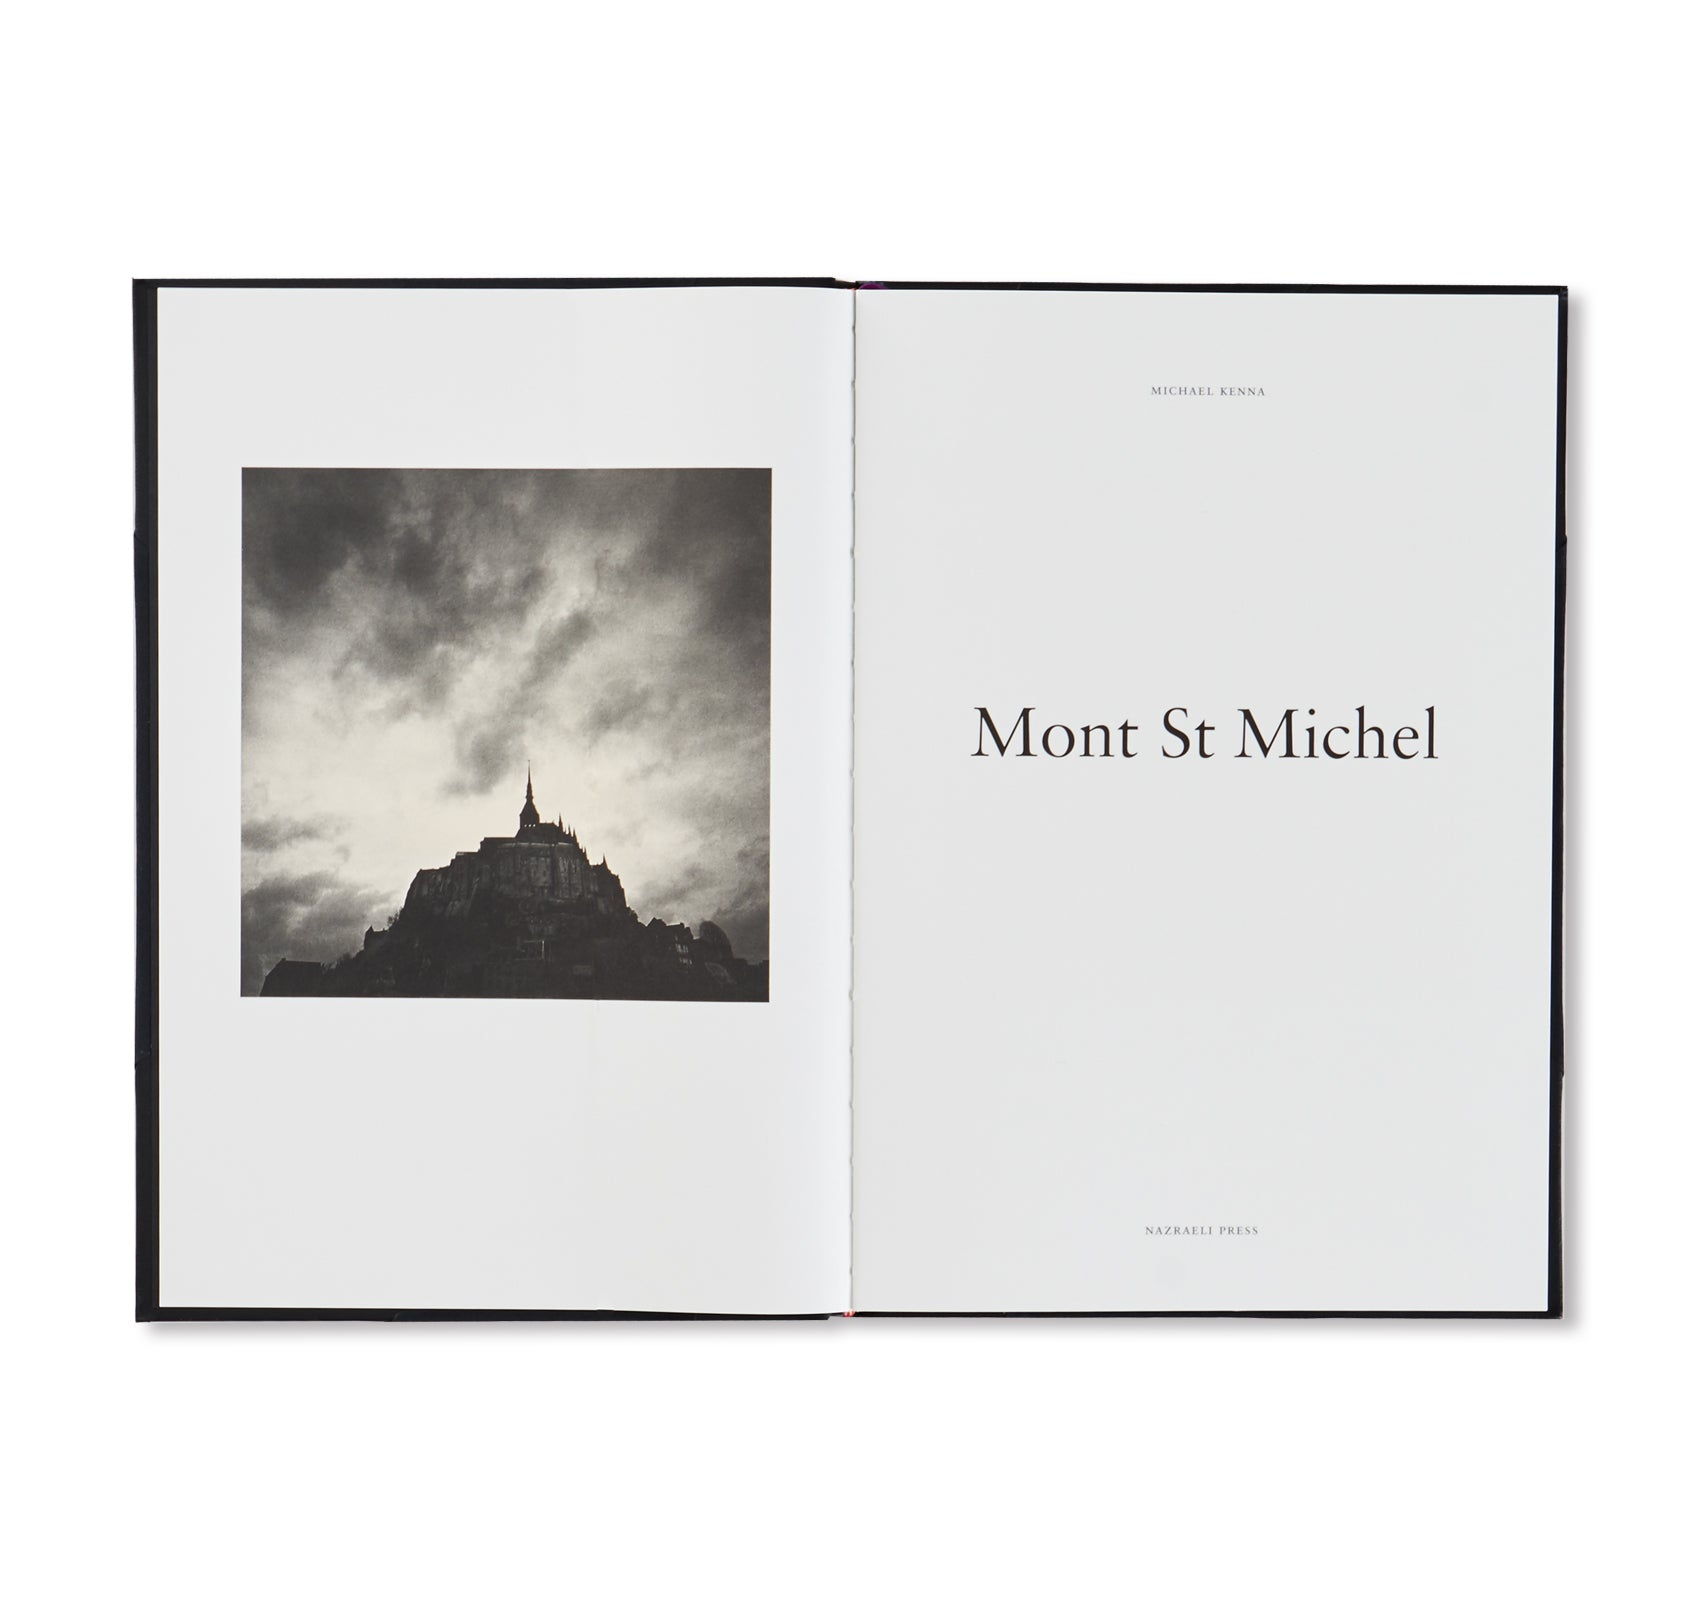 MONT ST MICHEL by Michael Kenna